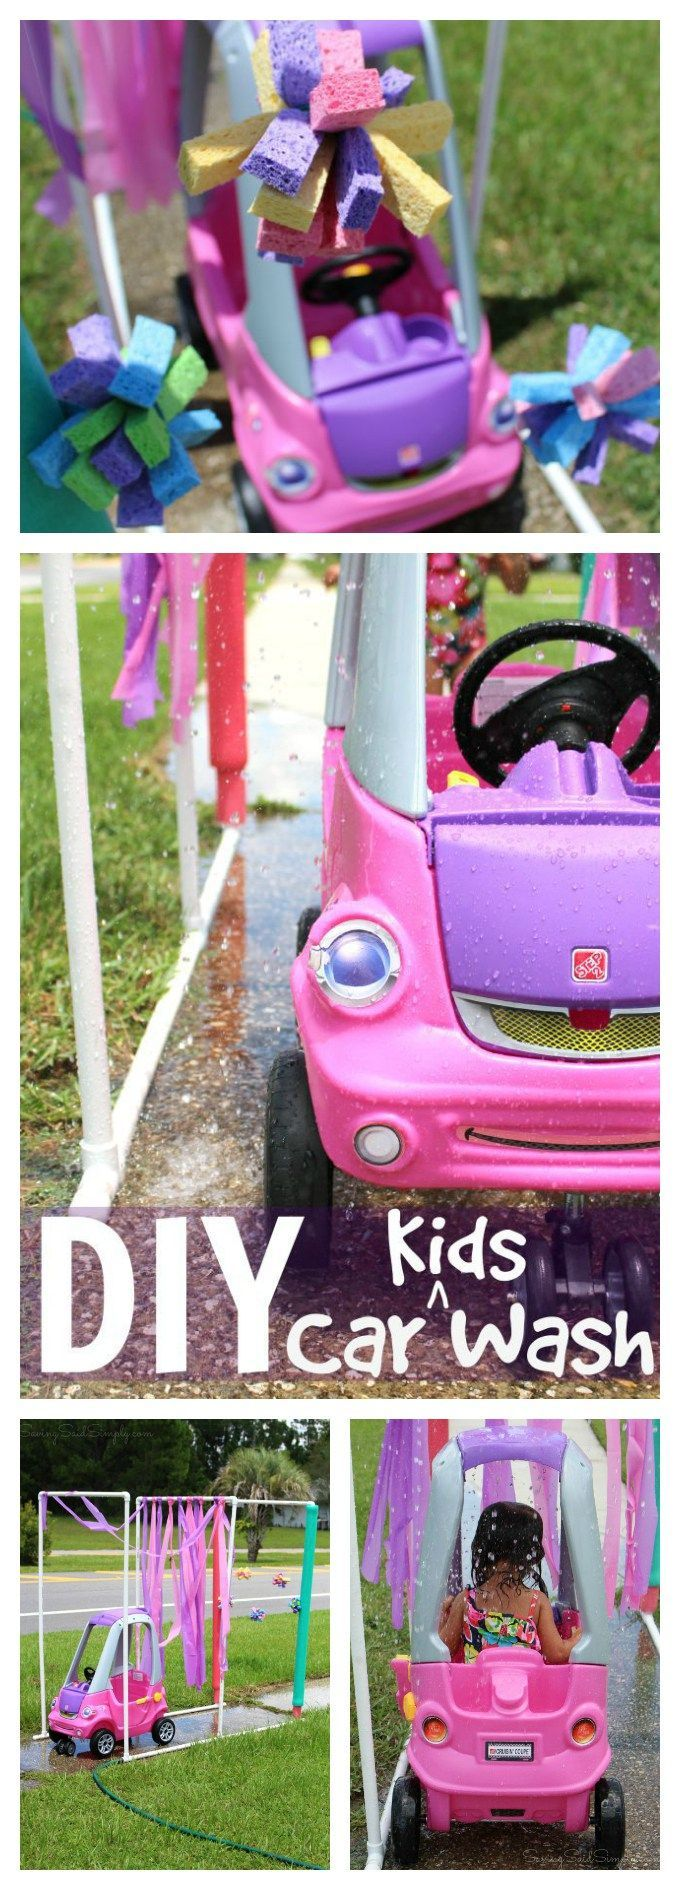 DIY Kid Car Wash, full tutorial! Perfect summer project